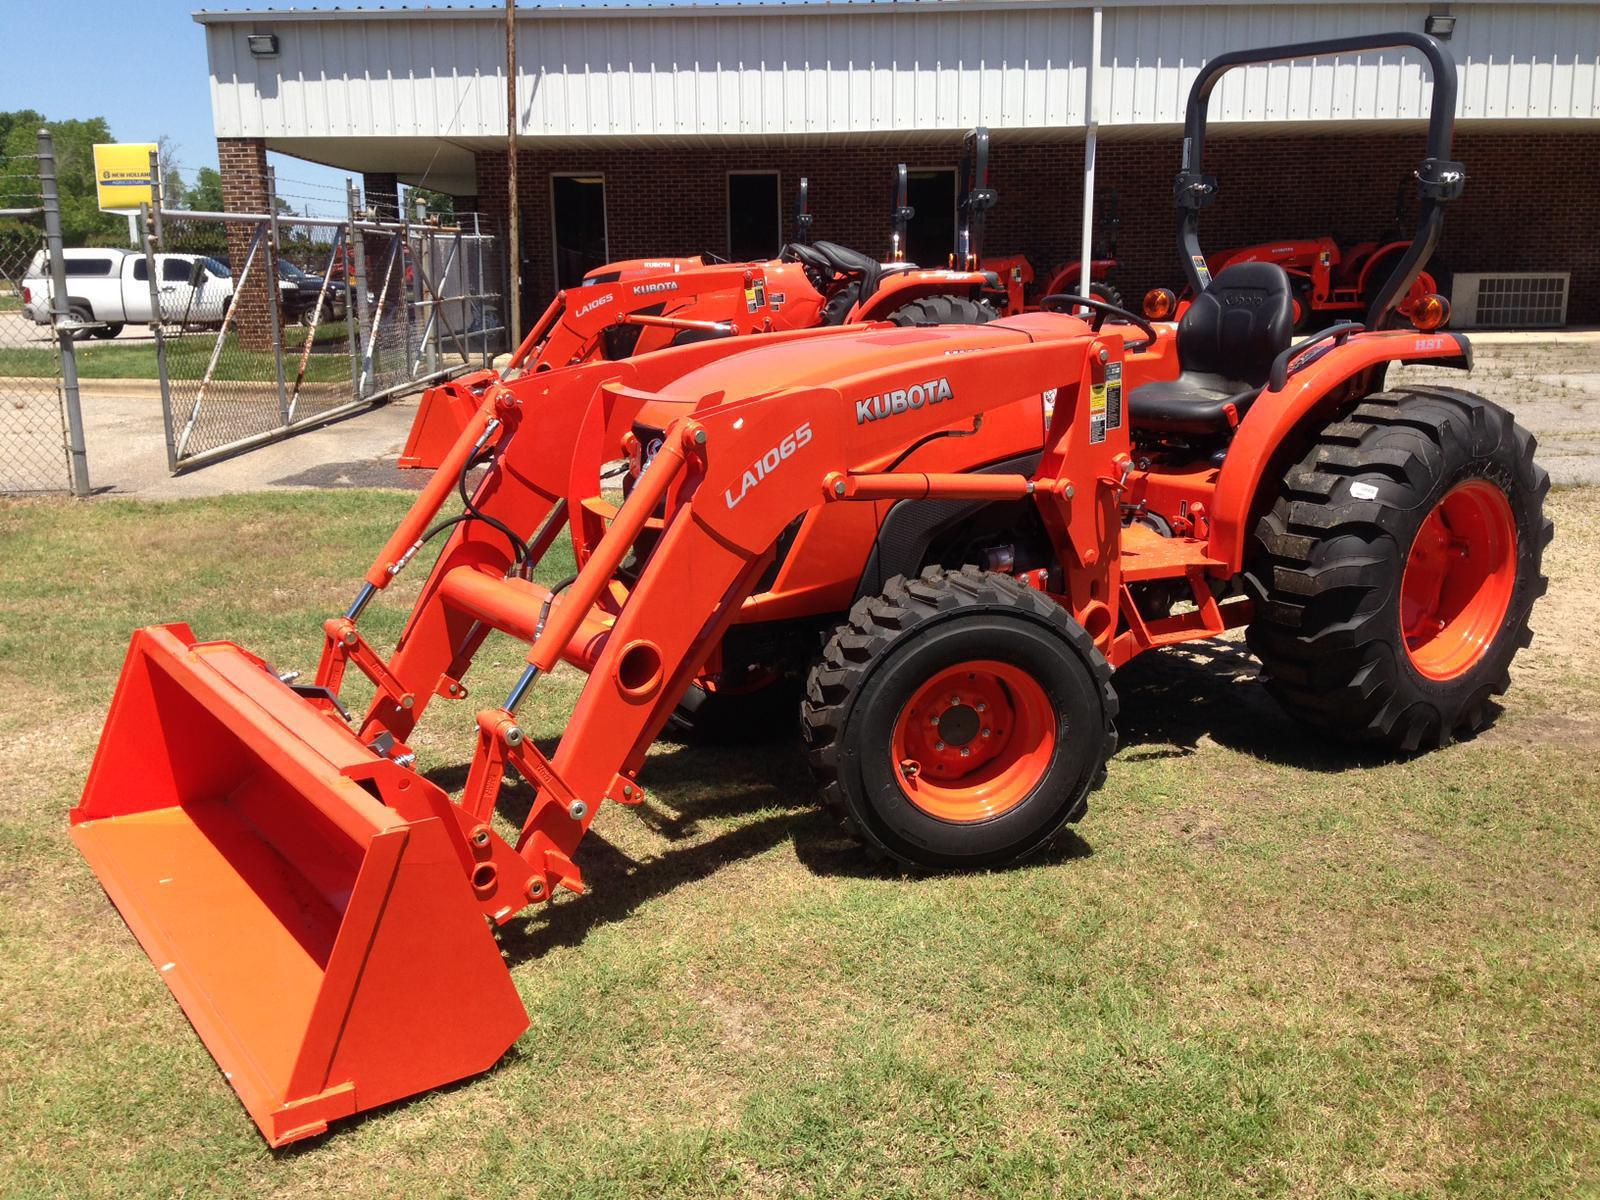 Kubota tractors for sale in kentucky - 2017 Kubota Mx5200 Hst 4wd For Sale In Raleigh Nc The Tractor Center 800 331 2519